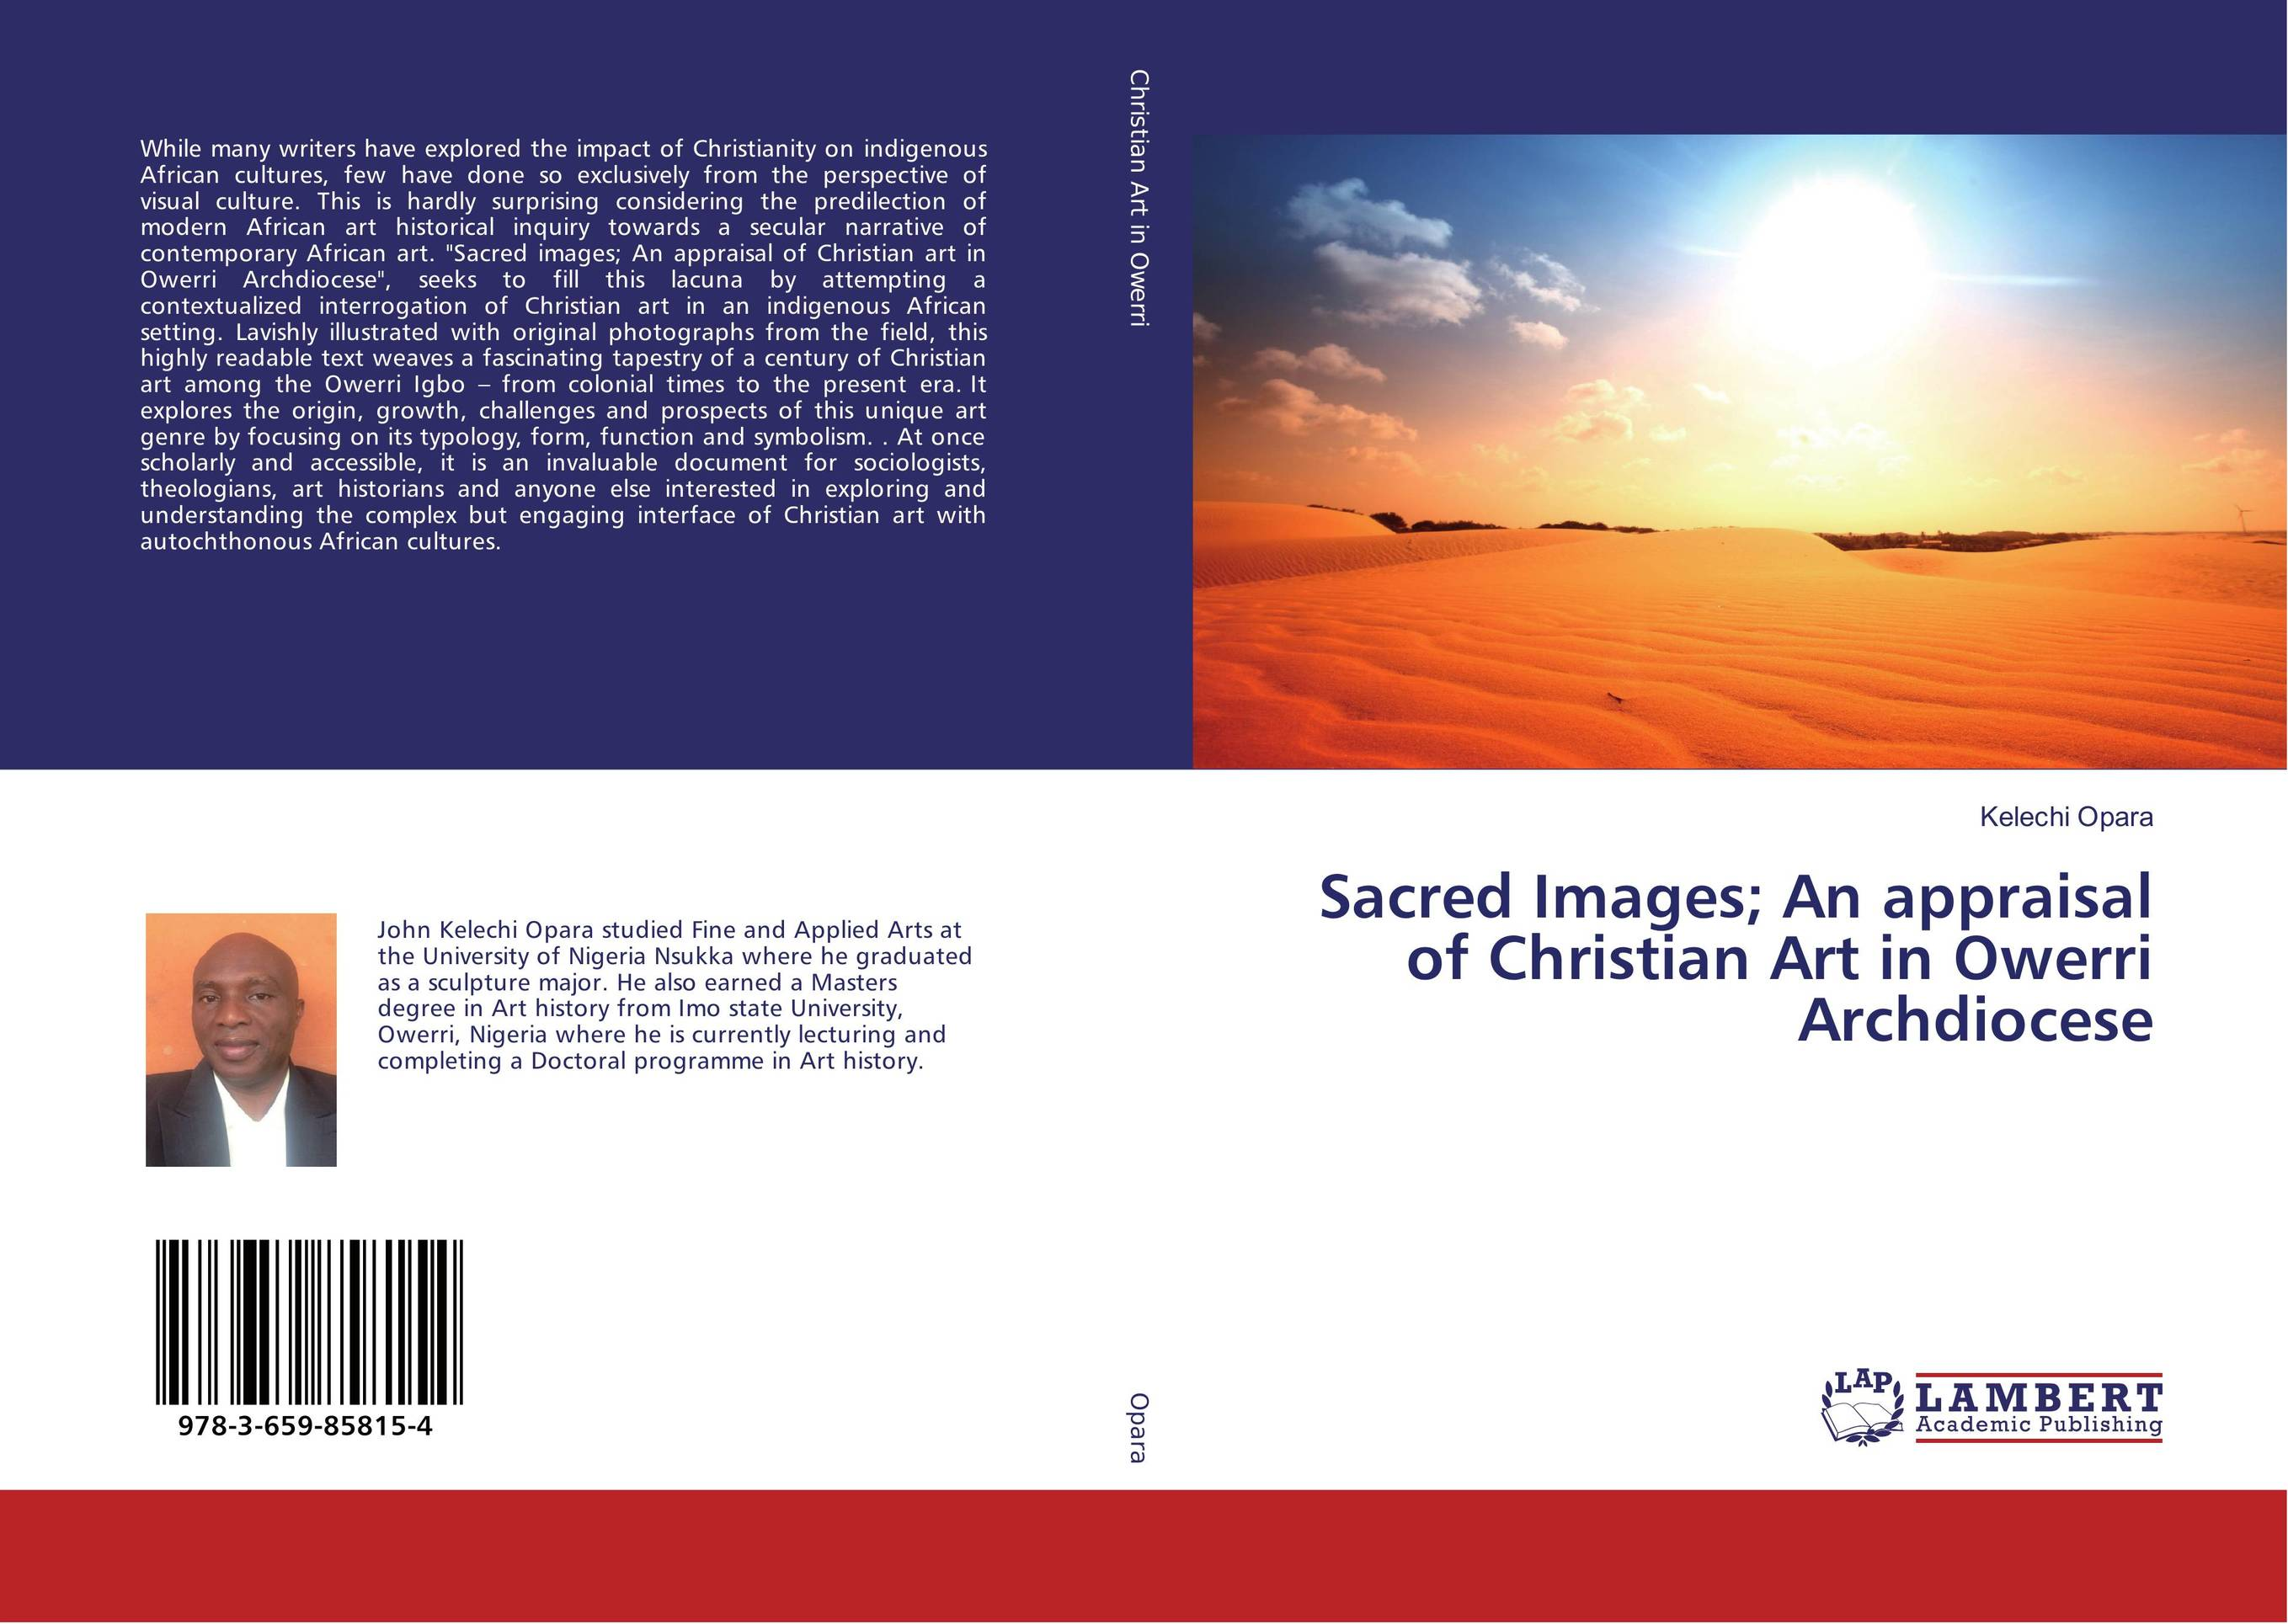 Sacred Images; An appraisal of Christian Art in Owerri Archdiocese duncan bruce the dream cafe lessons in the art of radical innovation